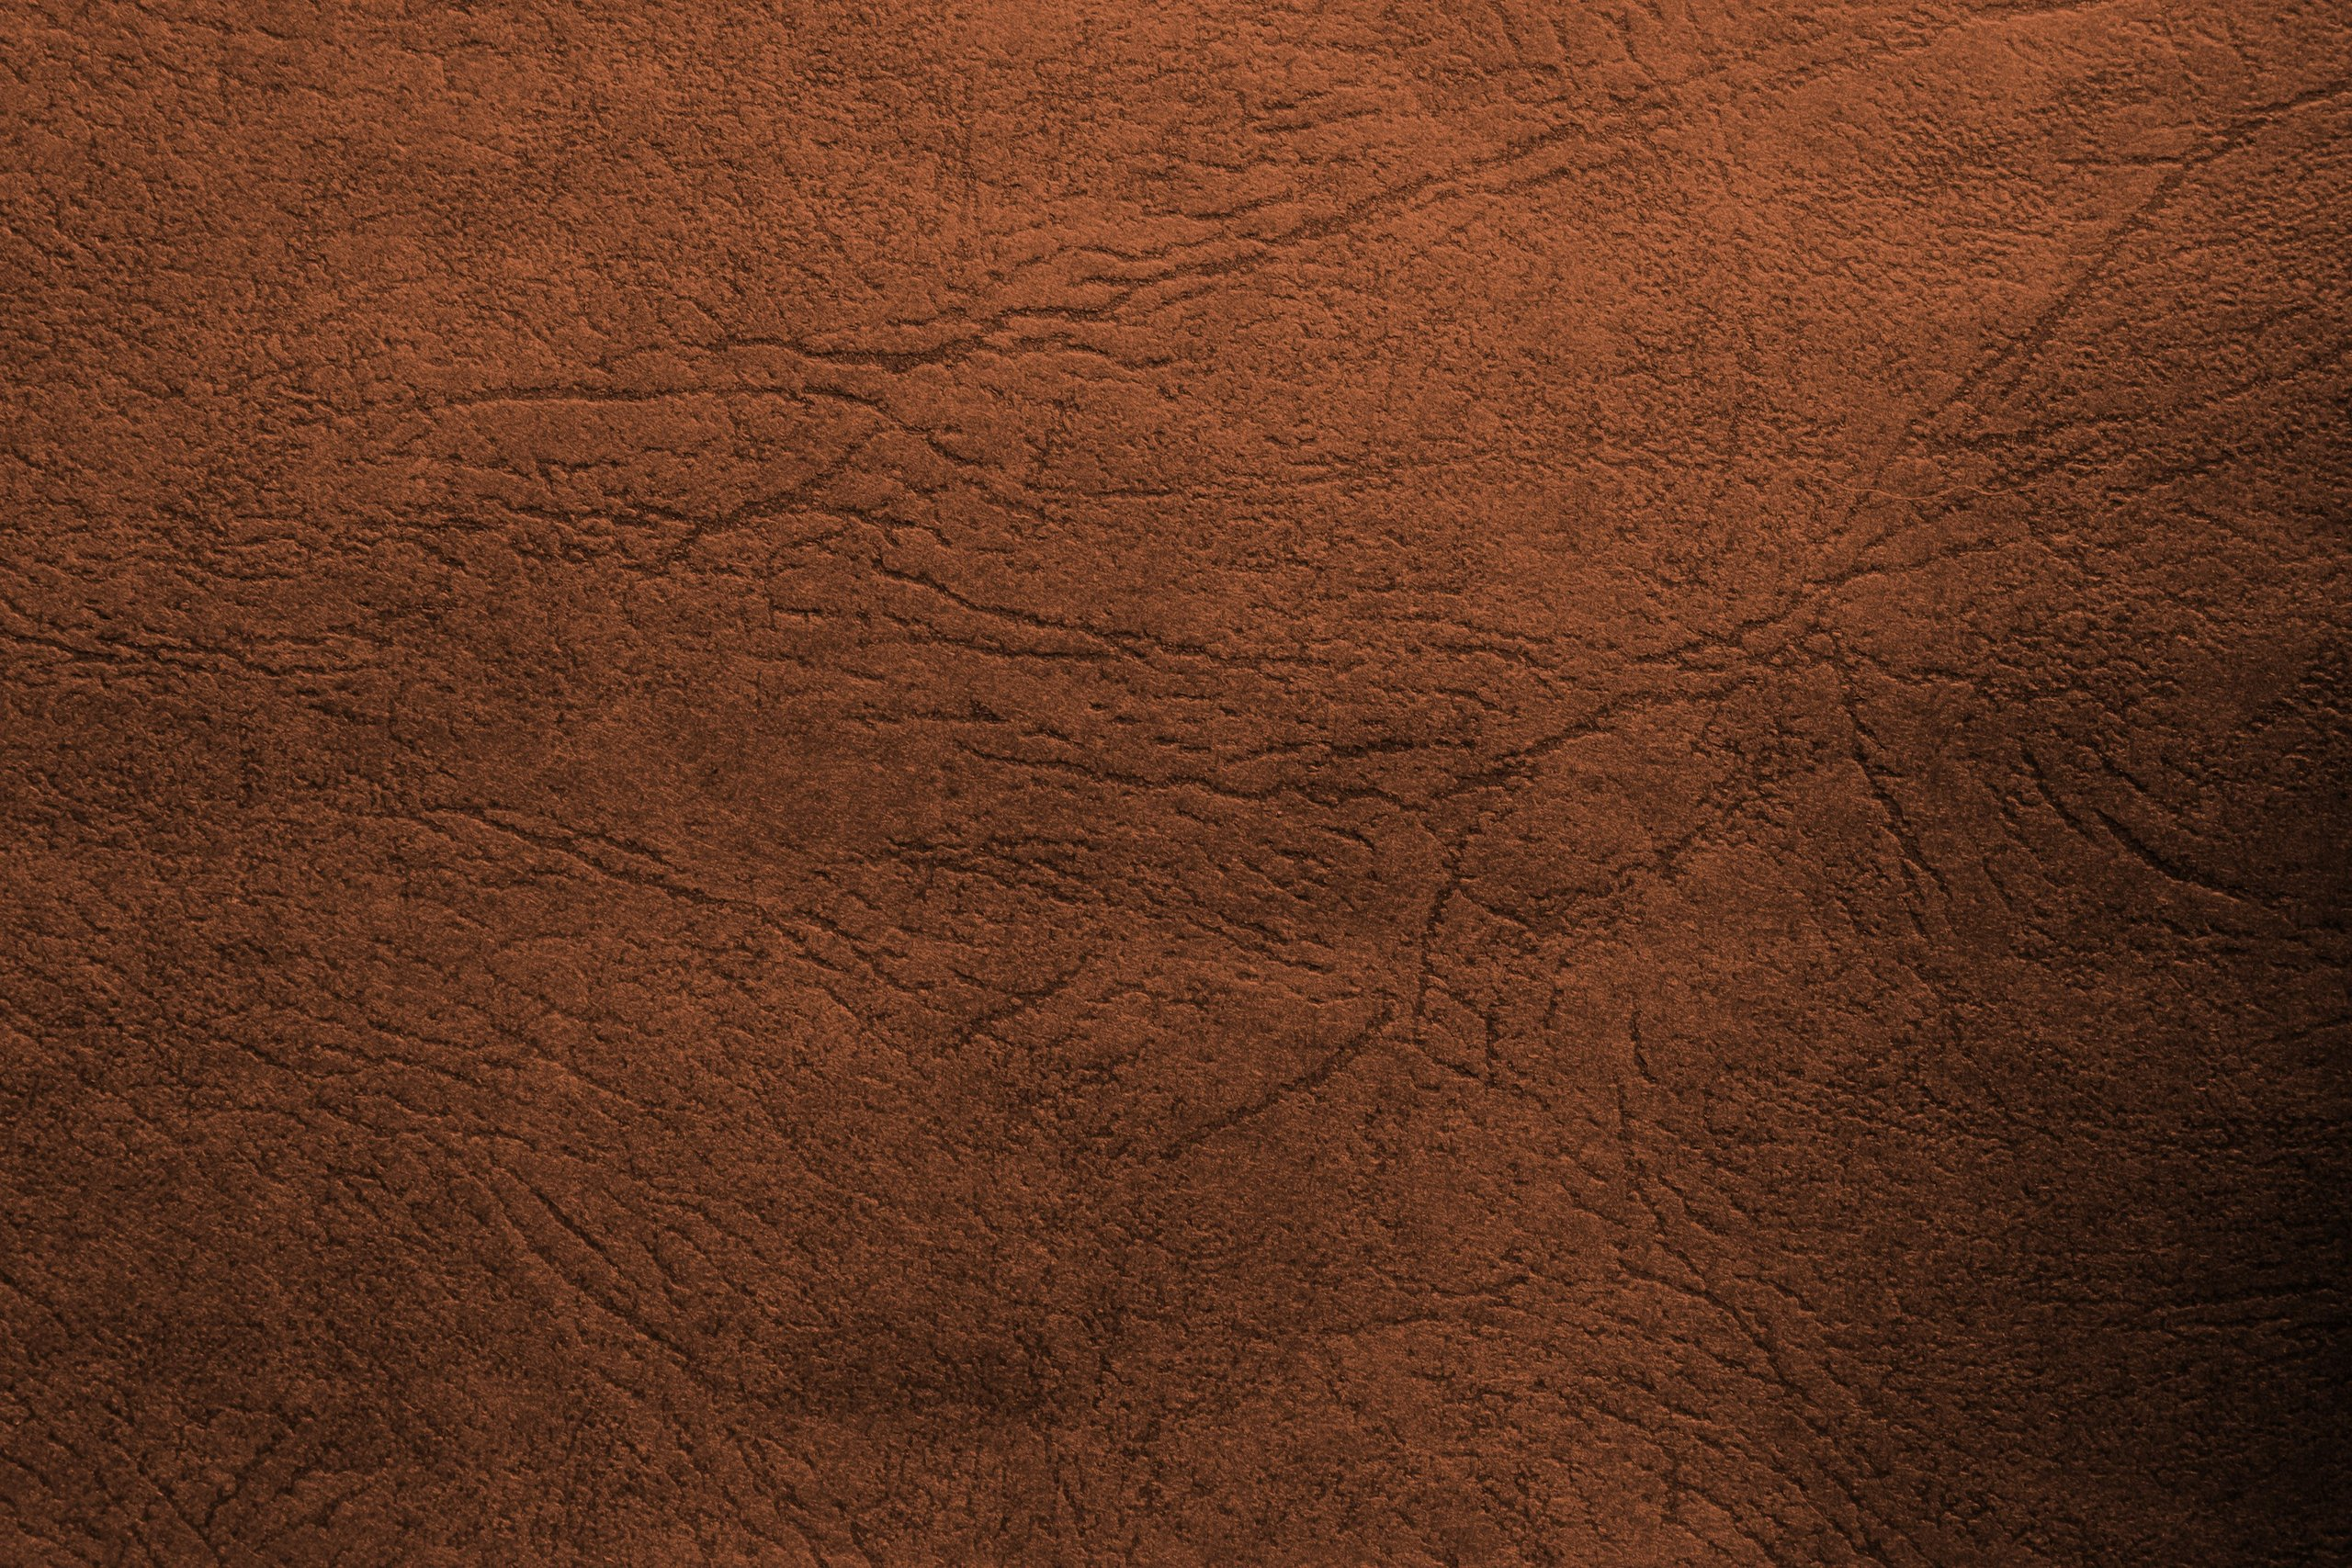 Brown Leather Wallpaper   Brown Photo 28317148 2560x1707